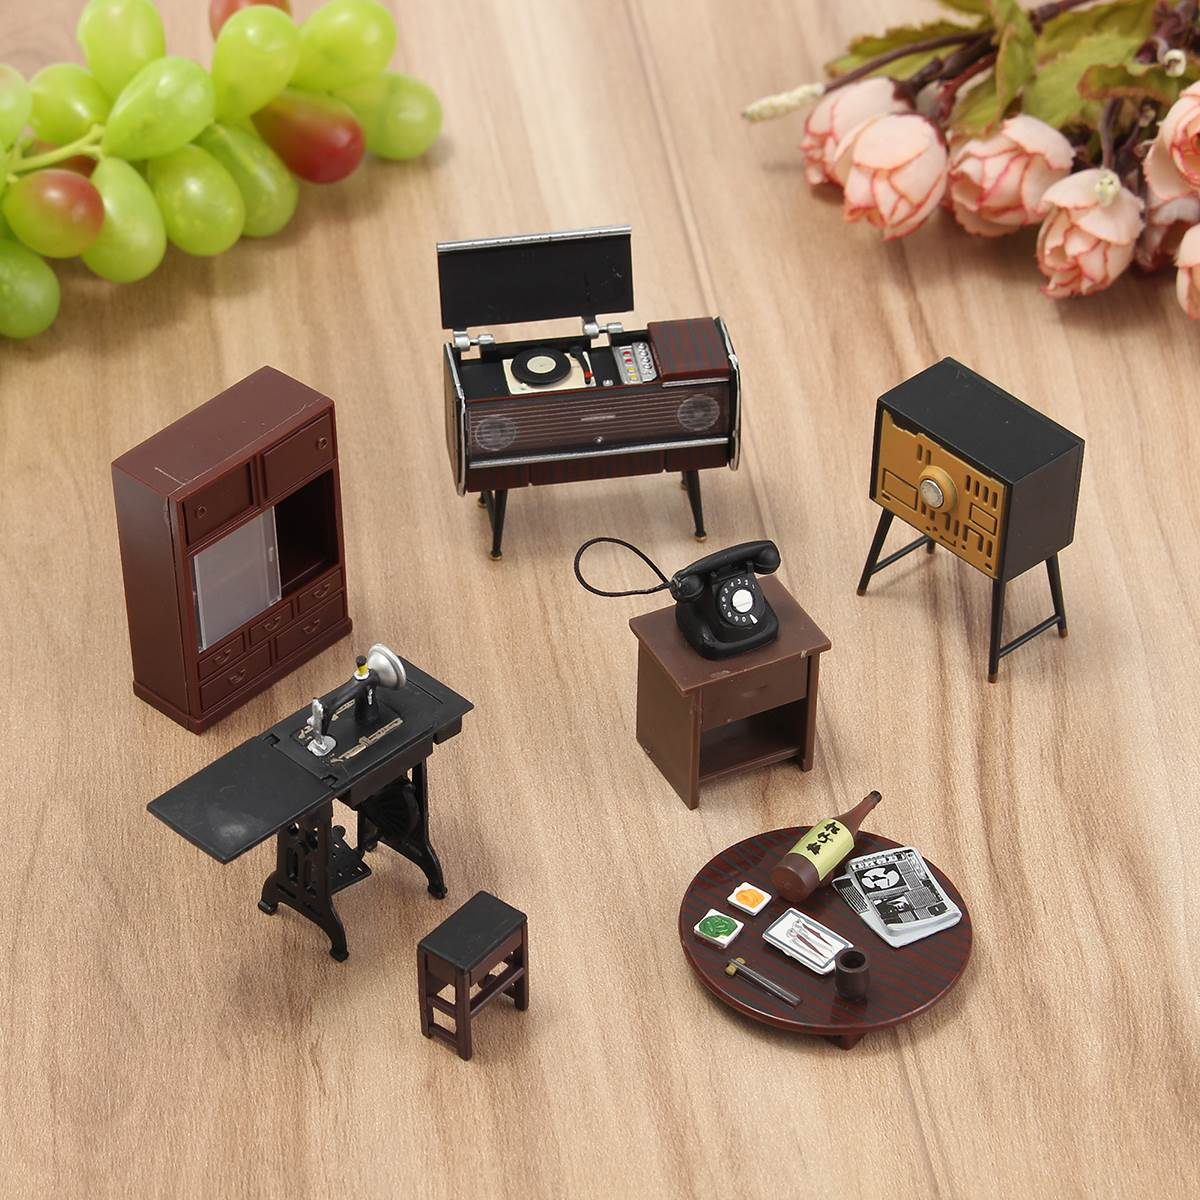 7pcs/set Wooden DIY <font><b>1</b></font>:<font><b>12</b></font> Simulation Miniature Dollhouse Furniture Mini Furniture Set For Children <font><b>Dolls</b></font> <font><b>house</b></font> <font><b>Accessories</b></font> image